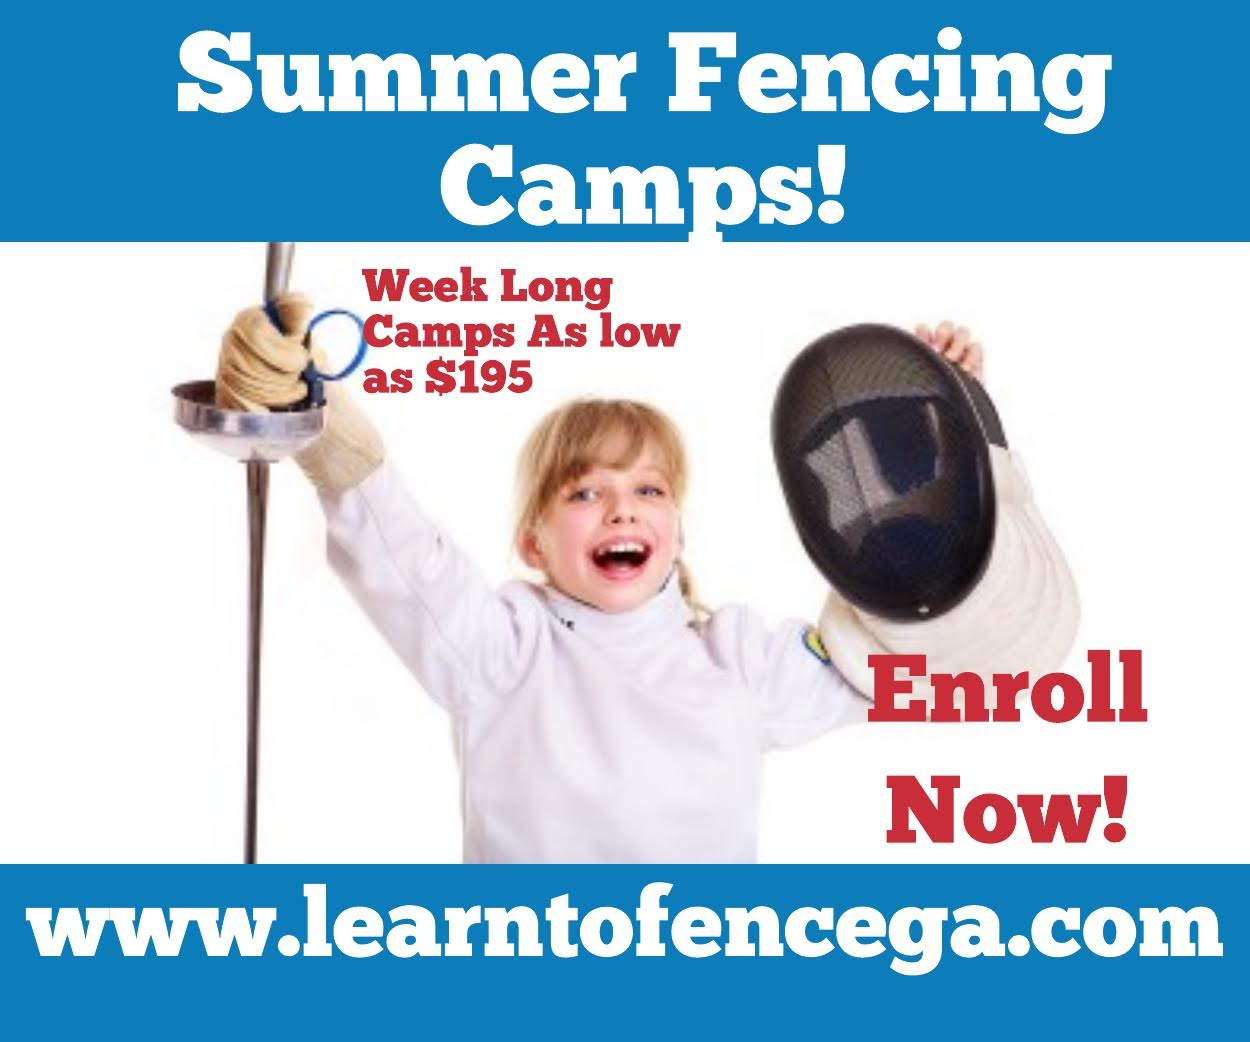 Premier Fencing Alliance summer camp